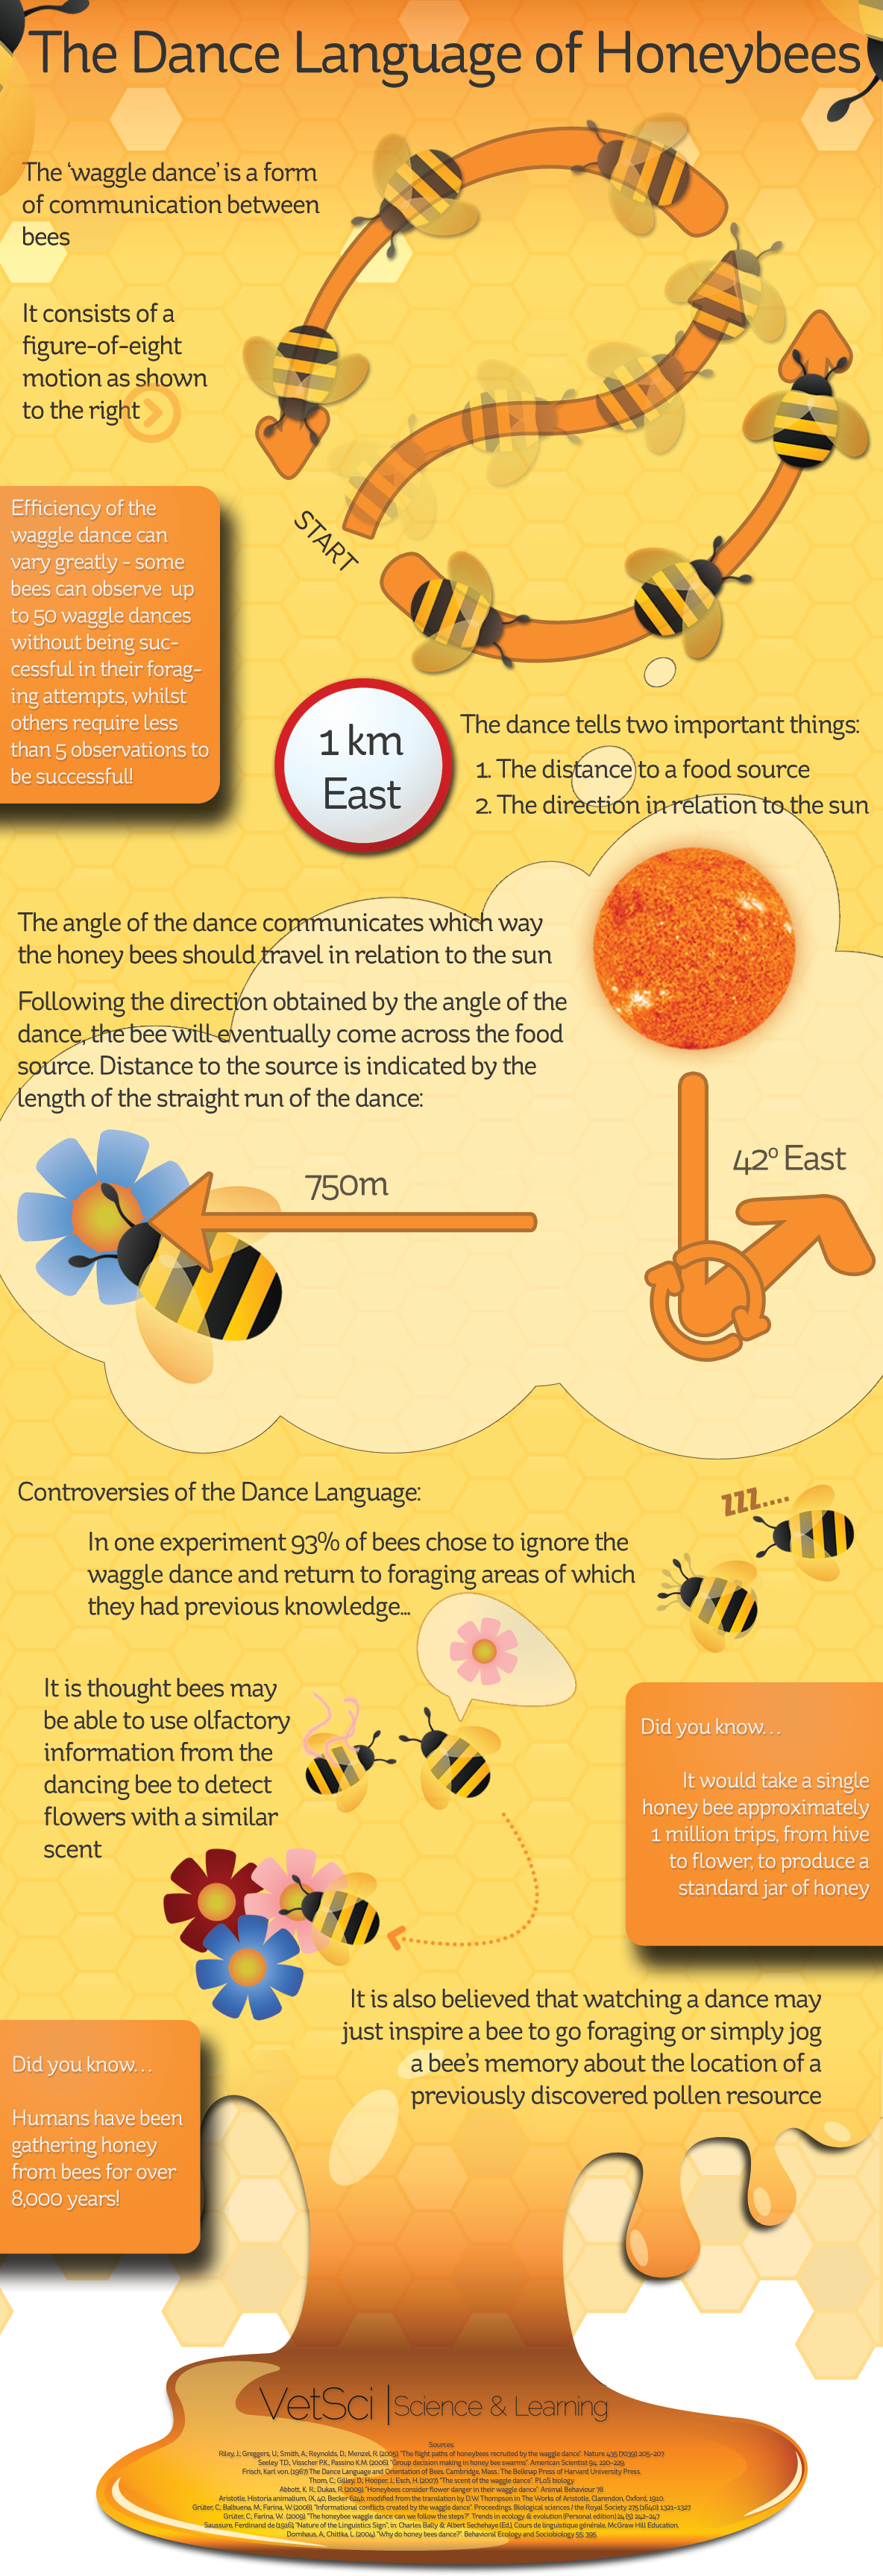 The Dance Language of Honeybees